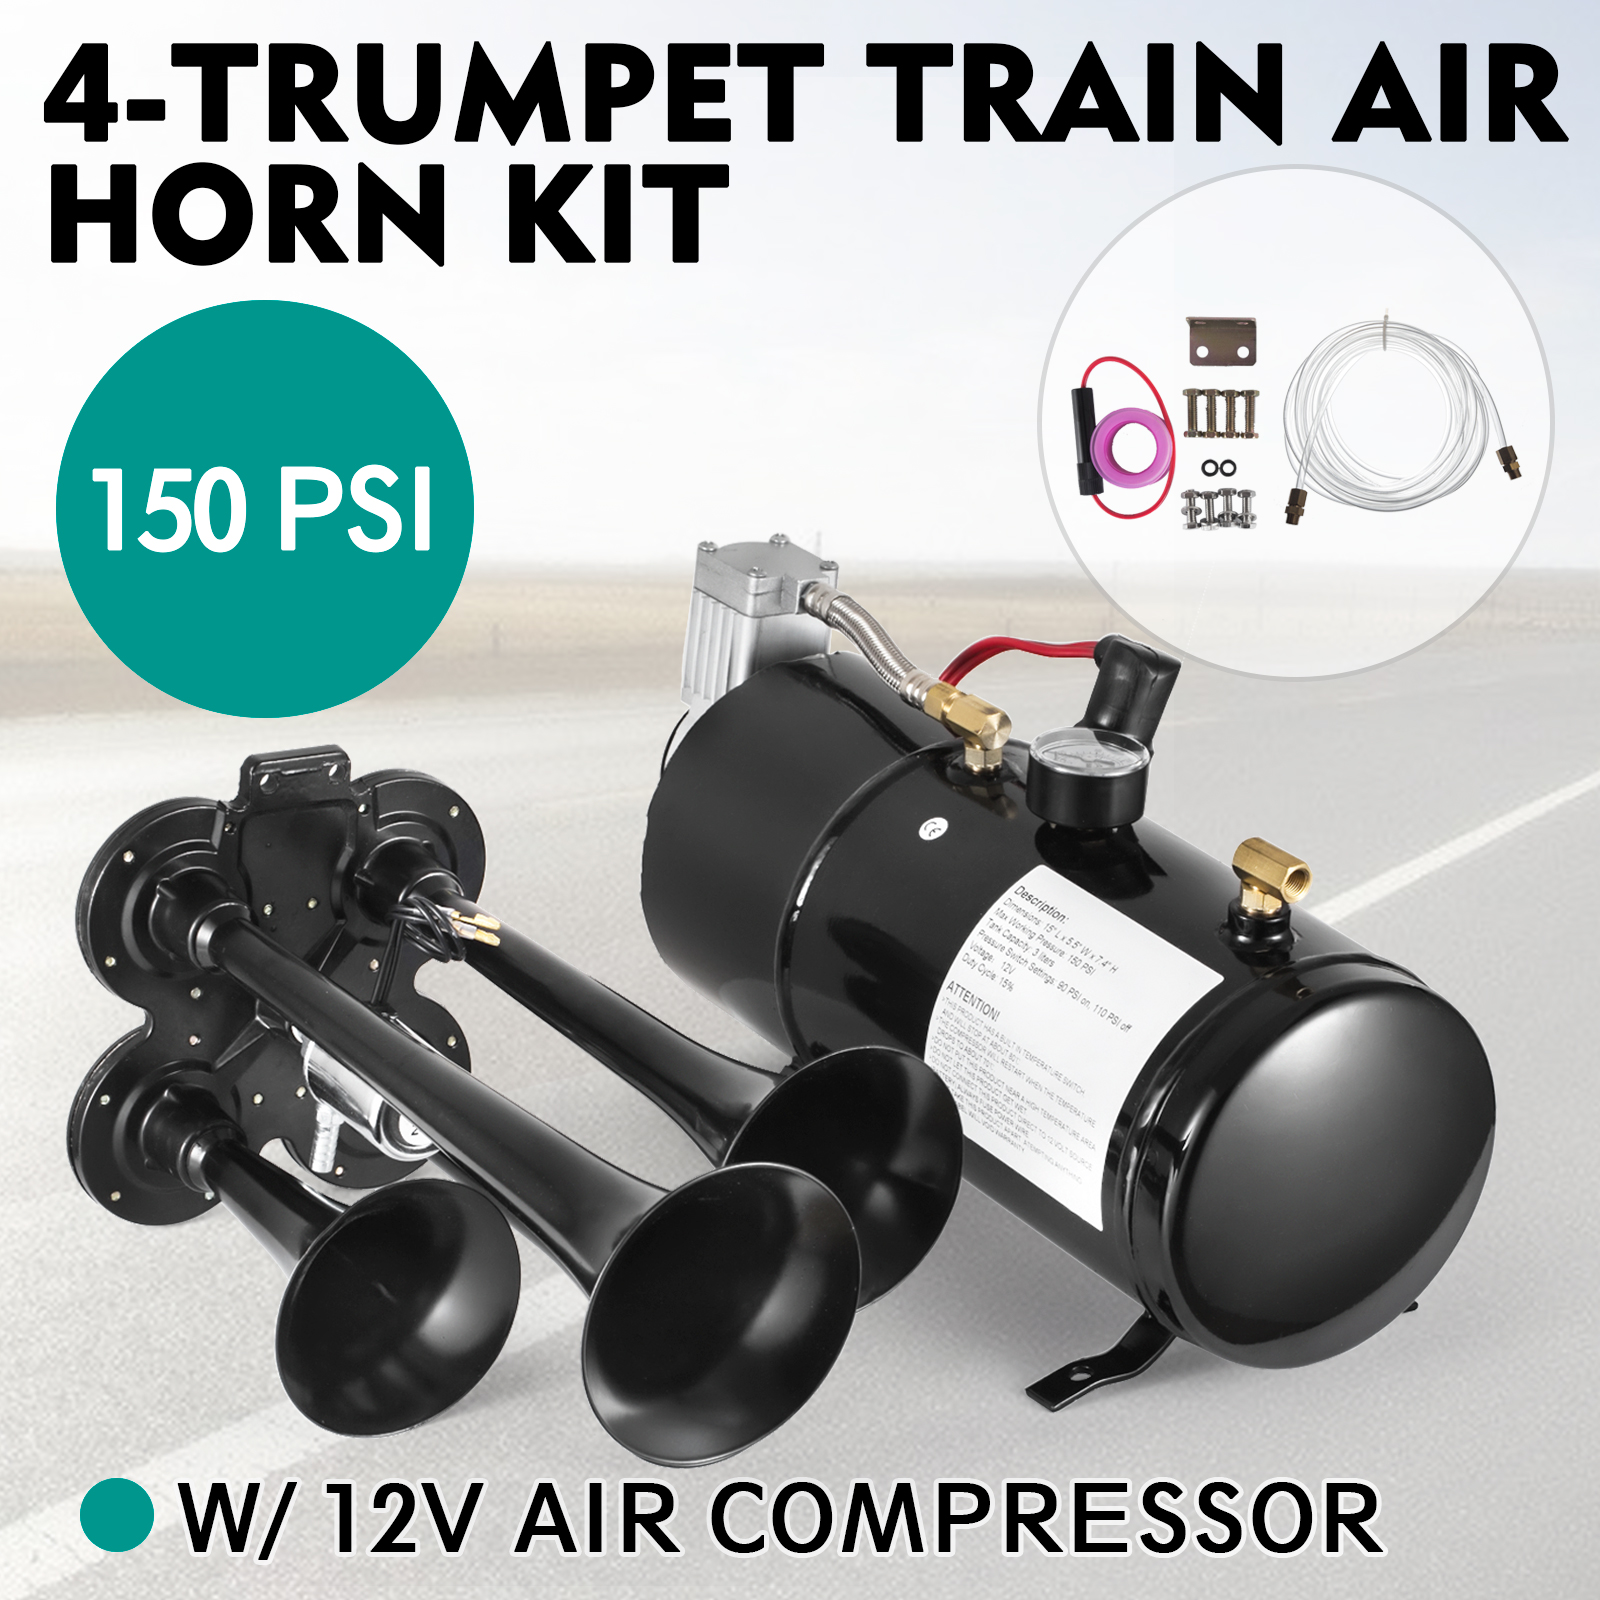 Details about 4-Trumpet 150 psi Air System 150dB+ Metal 12V Train Air Horn  Kit for car truck